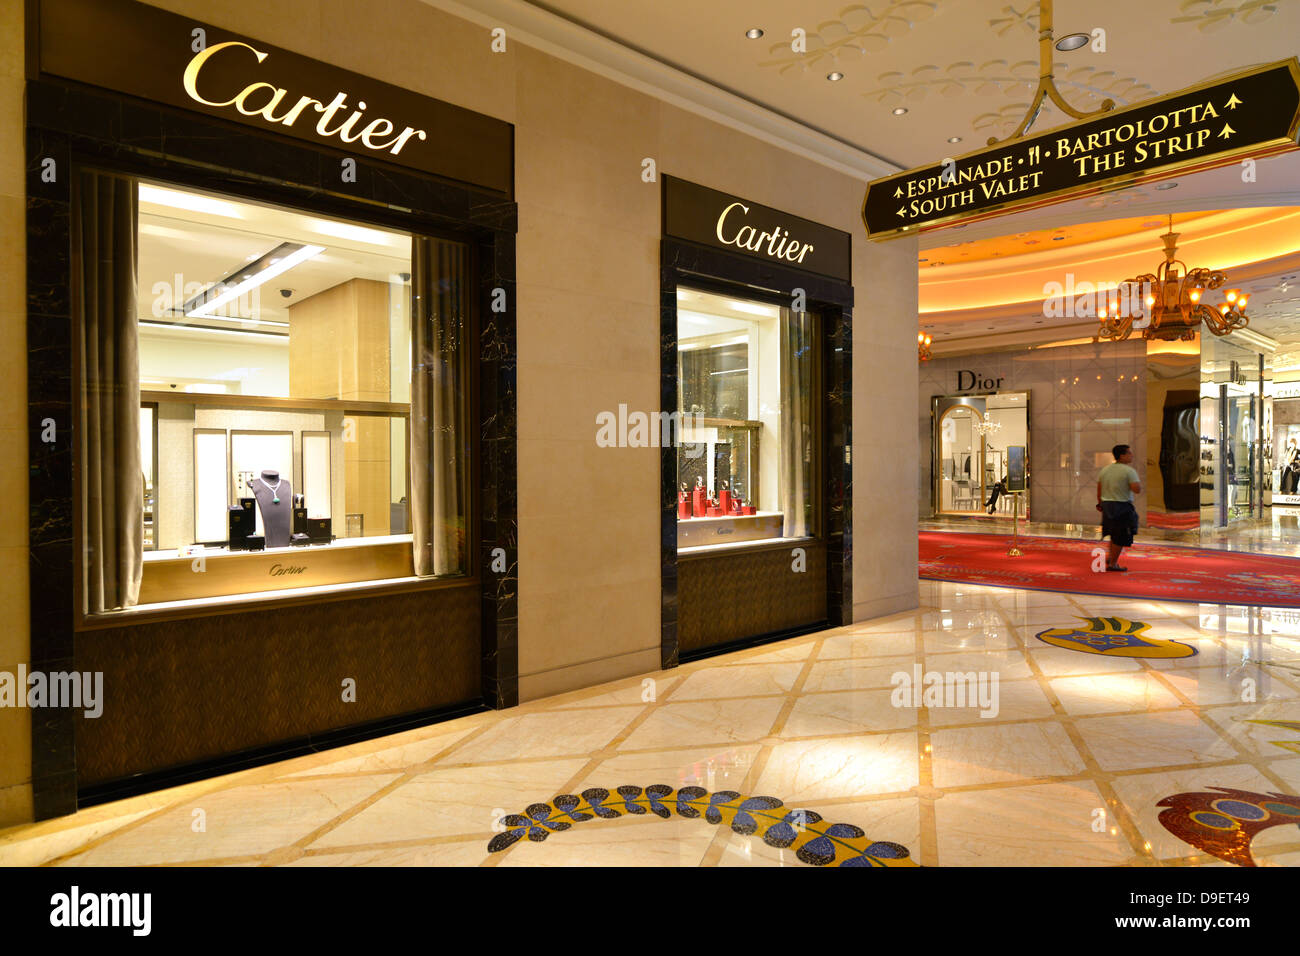 Boutique cartier dior five star hotel casino wynn las for Five star boutique